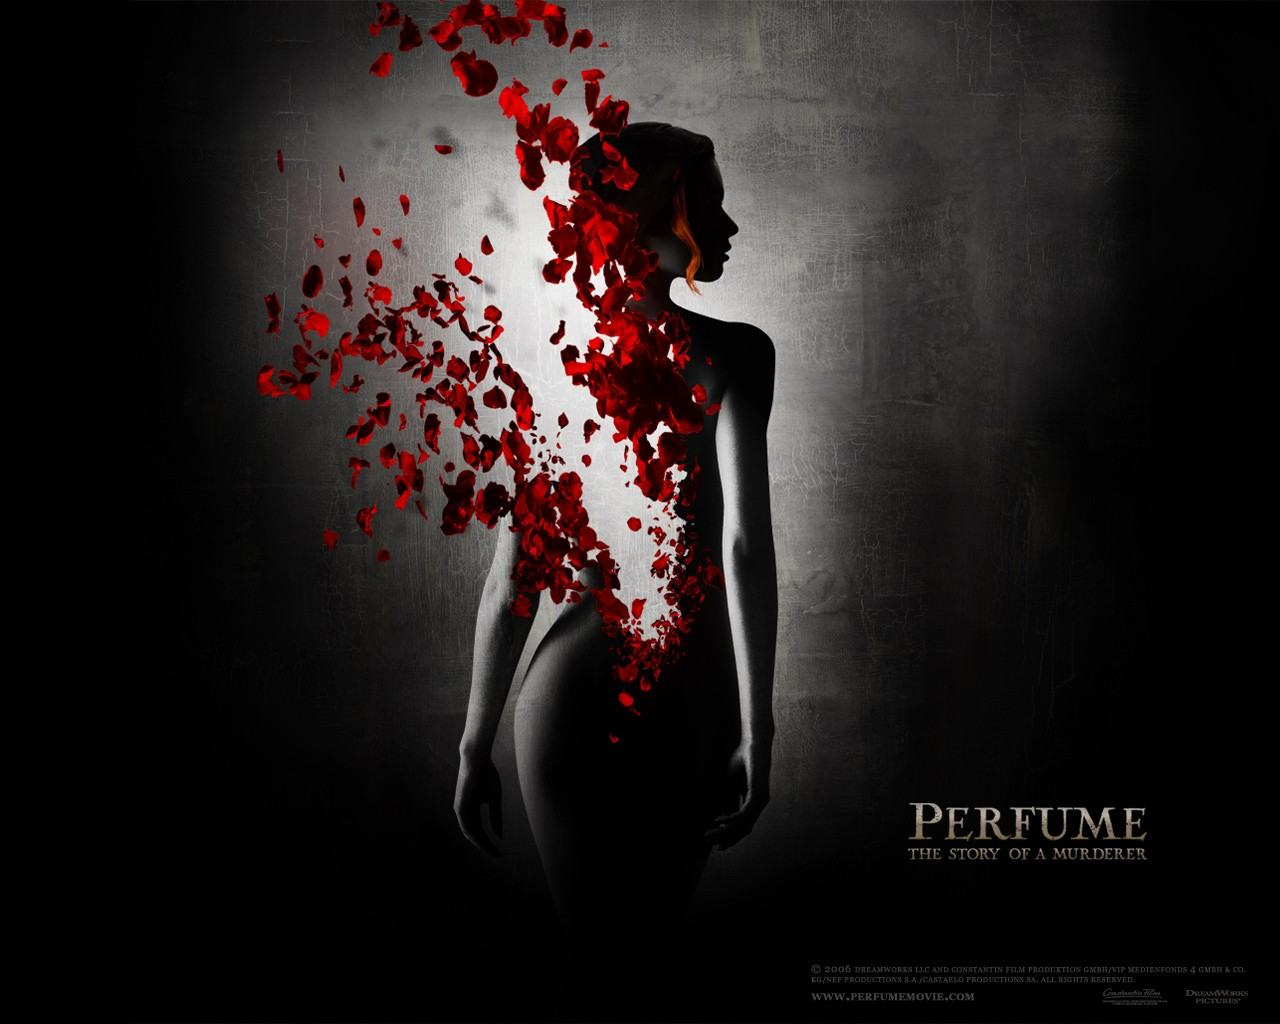 ���� Perfume: The Story of a Murderer 1280x1024